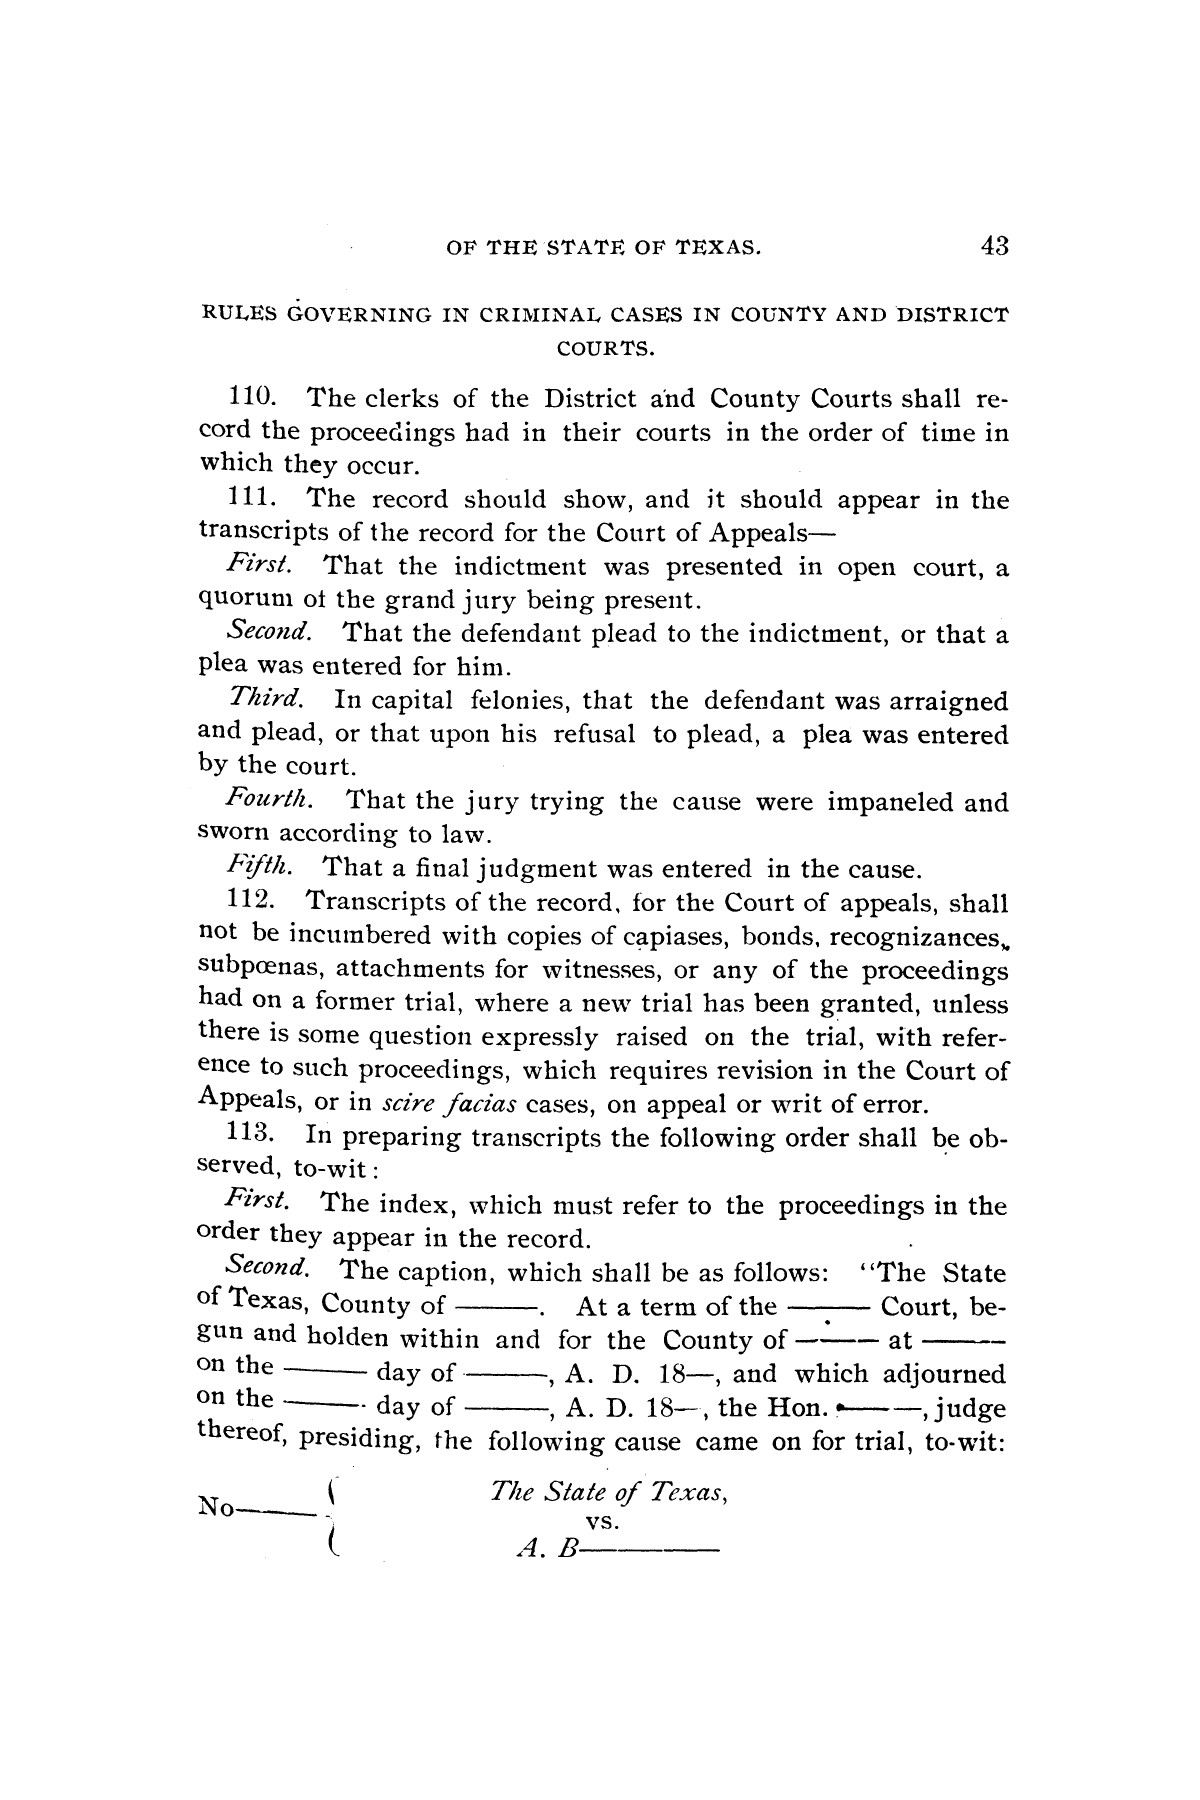 Rules for the courts of Texas: adopted by order of the Supreme Court at Tyler on the first day of December, A.D. 1877: together with amendments thereto at various times up to the close of the Austin term, A.D. 1890                                                                                                      [Sequence #]: 45 of 64